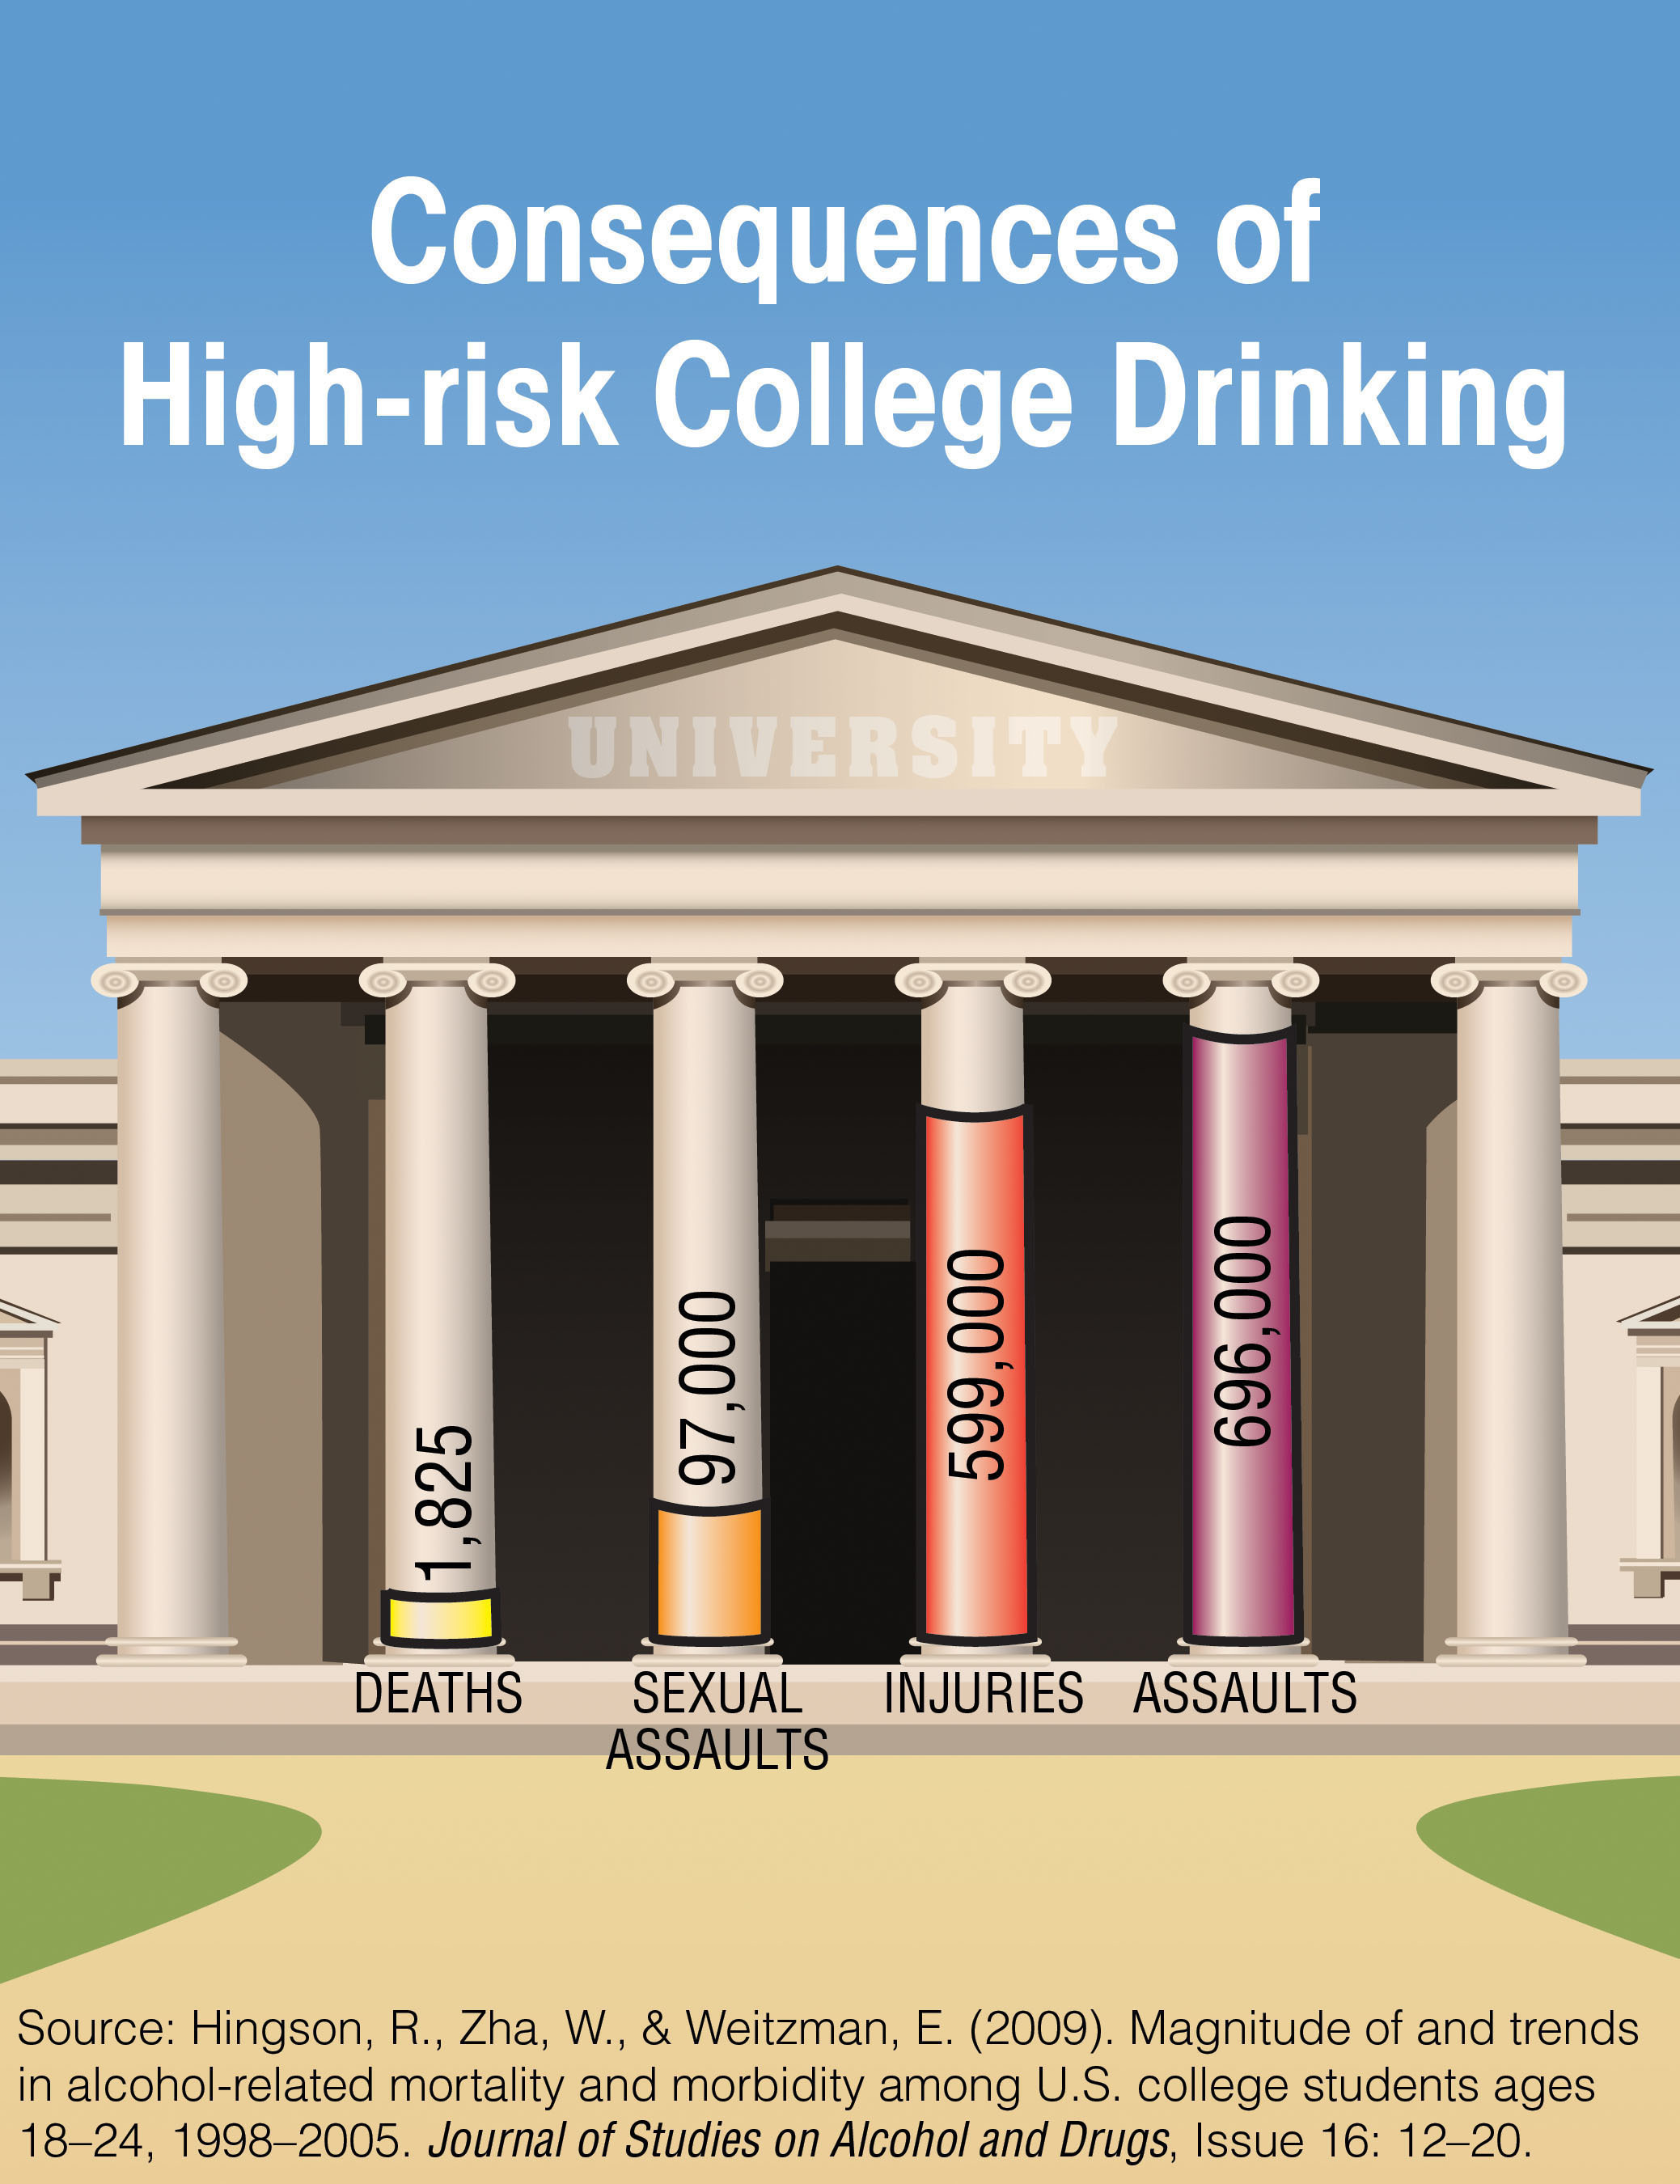 Fall Semester -- A Time For Parents To Discuss The Risks Of College Drinking